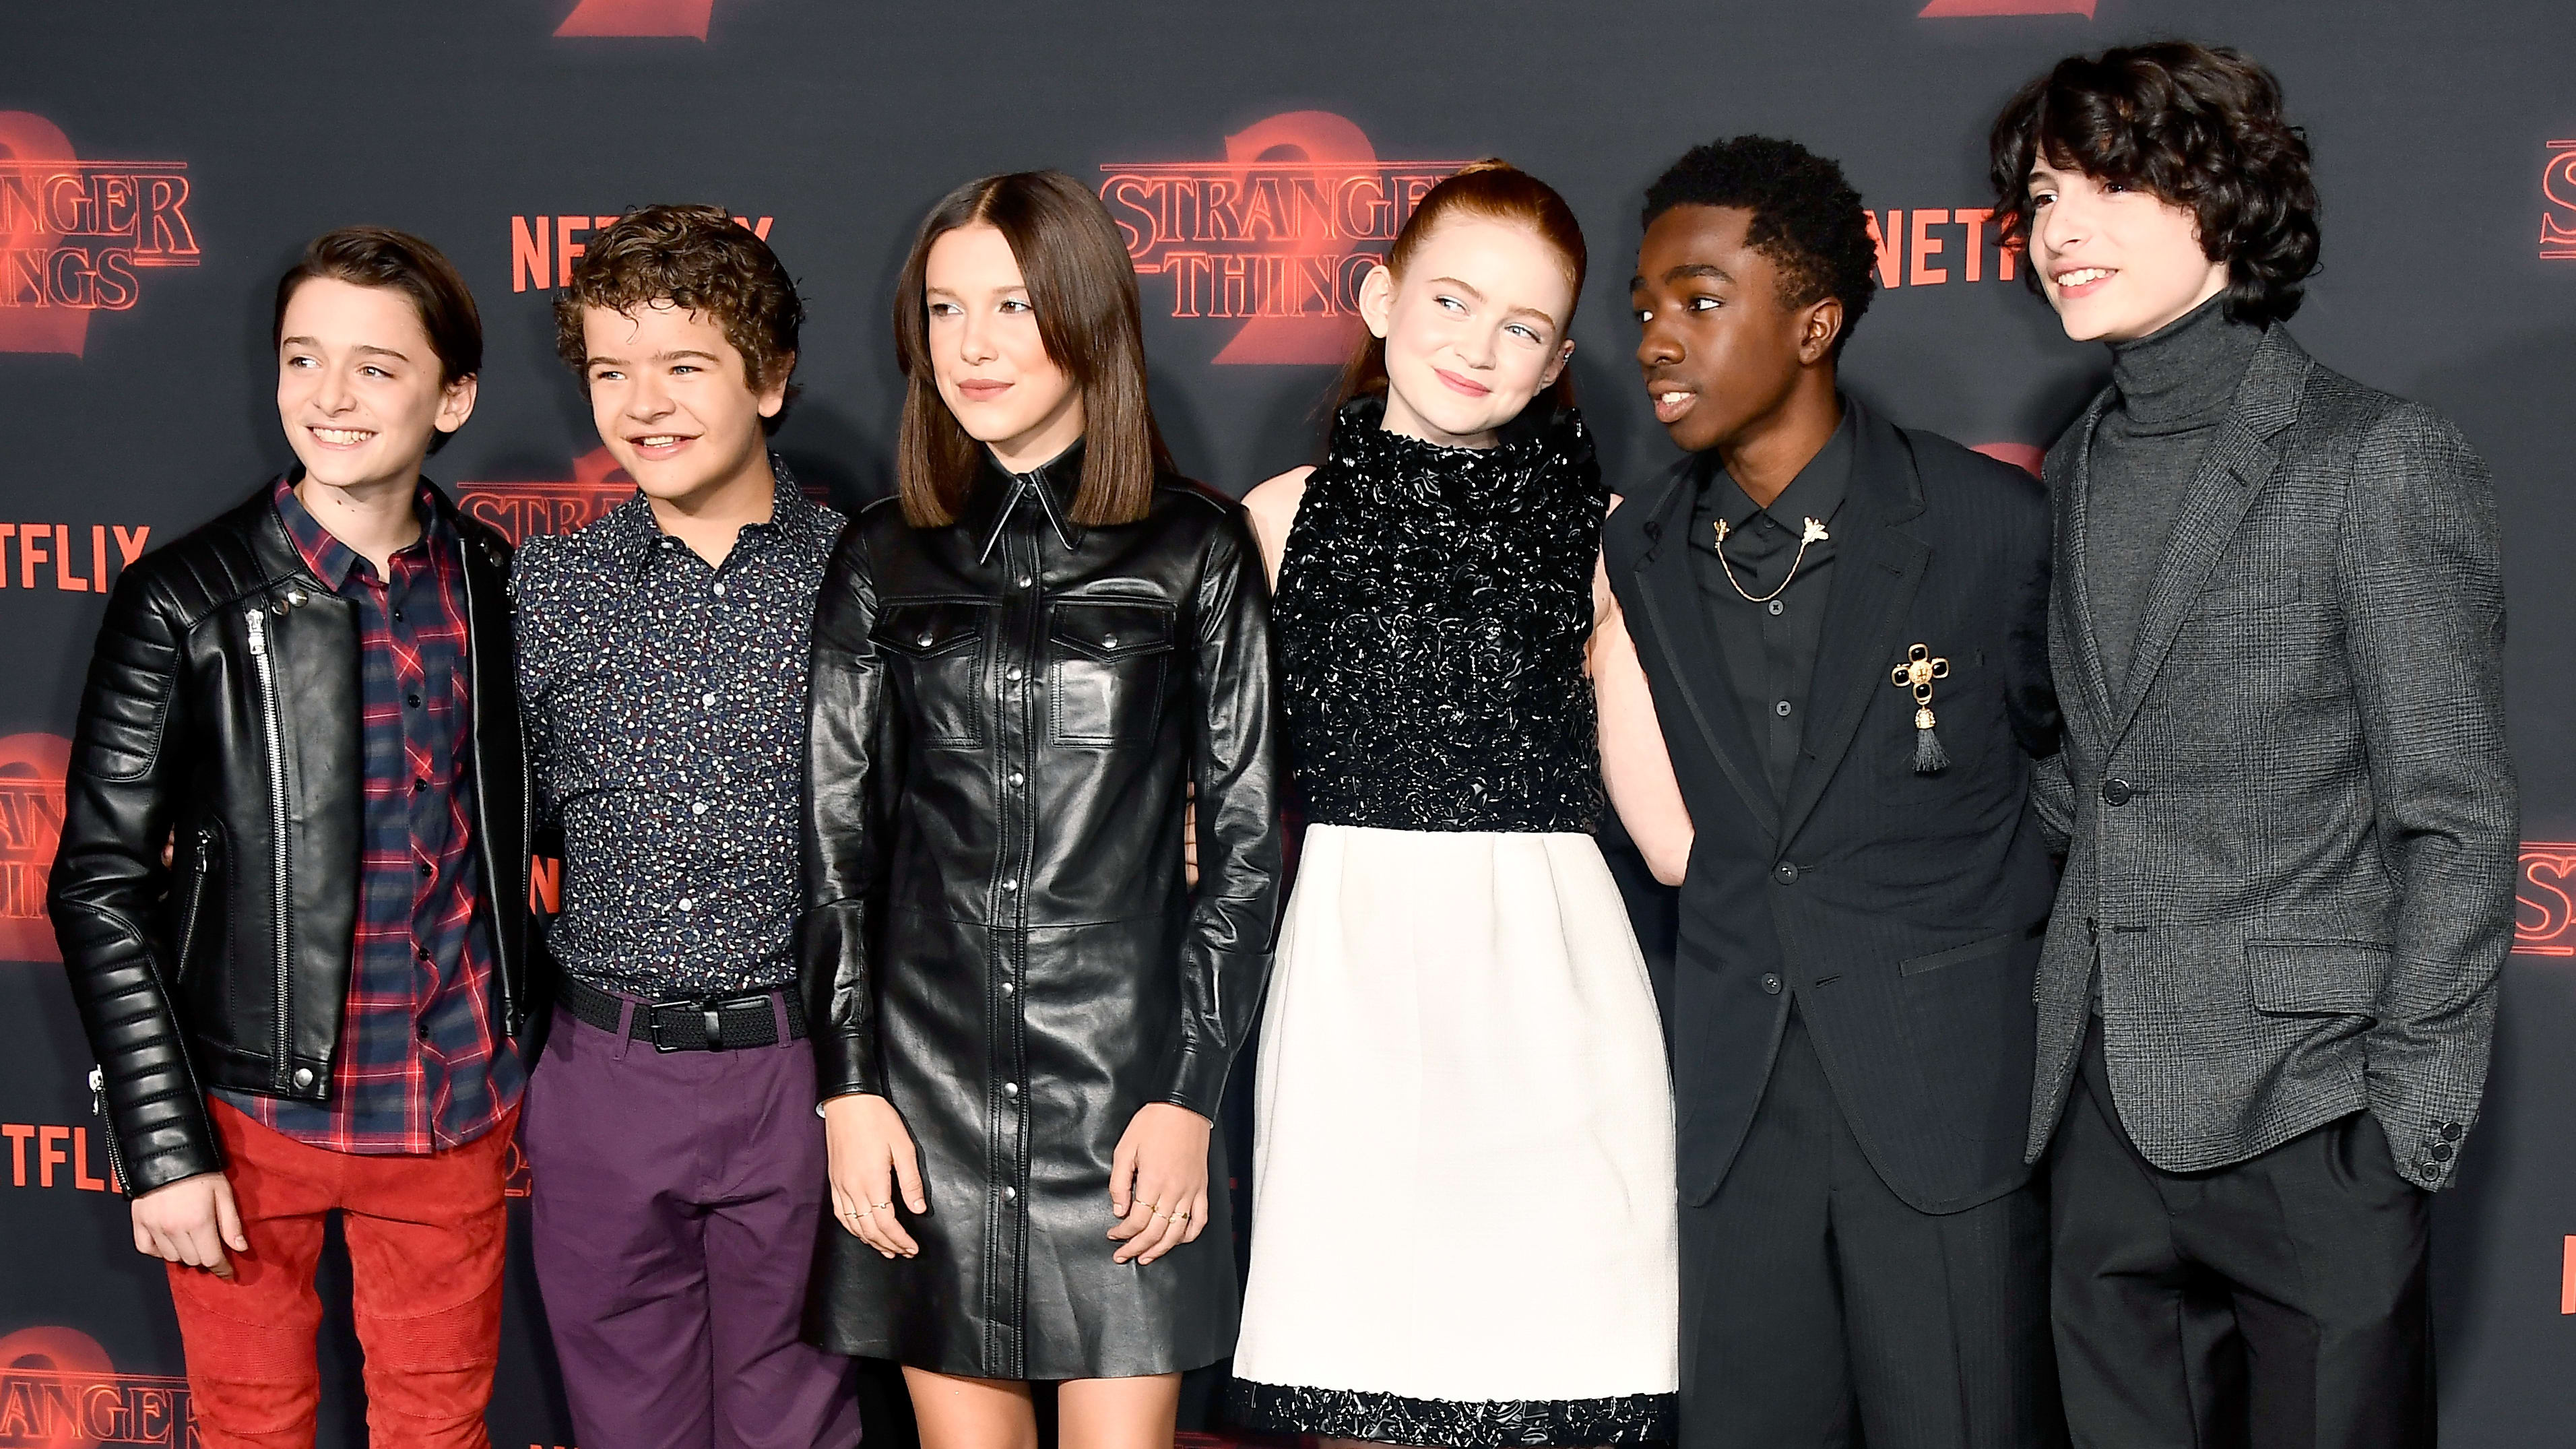 """LOS ANGELES, CA - OCTOBER 26:  (L-R) Noah Schnapp, Gaten Matarazzo, Millie Bobby Brown, Sadie Sink, Caleb McLaughlin, and Finn Wolfhard attend the premiere of Netflix's """"Stranger Things"""" Season 2 at Regency Bruin Theatre on October 26, 2017 in Los Angeles, California.  (Photo by Frazer Harrison/Getty Images)"""